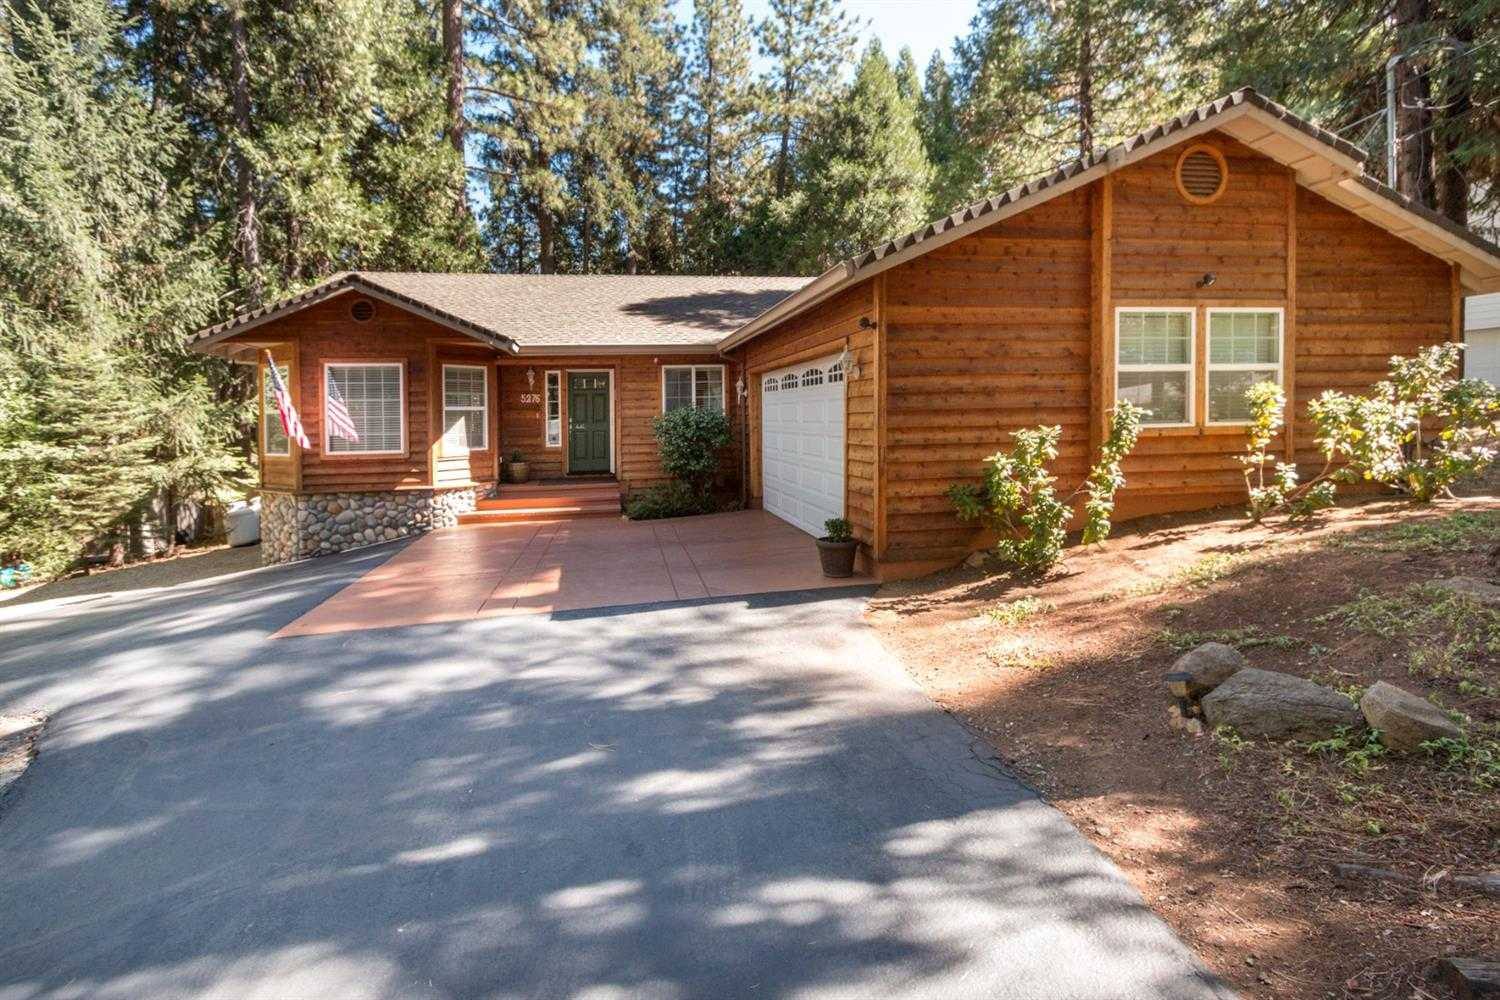 $400,000 - 3Br/2Ba -  for Sale in Pollock Pines